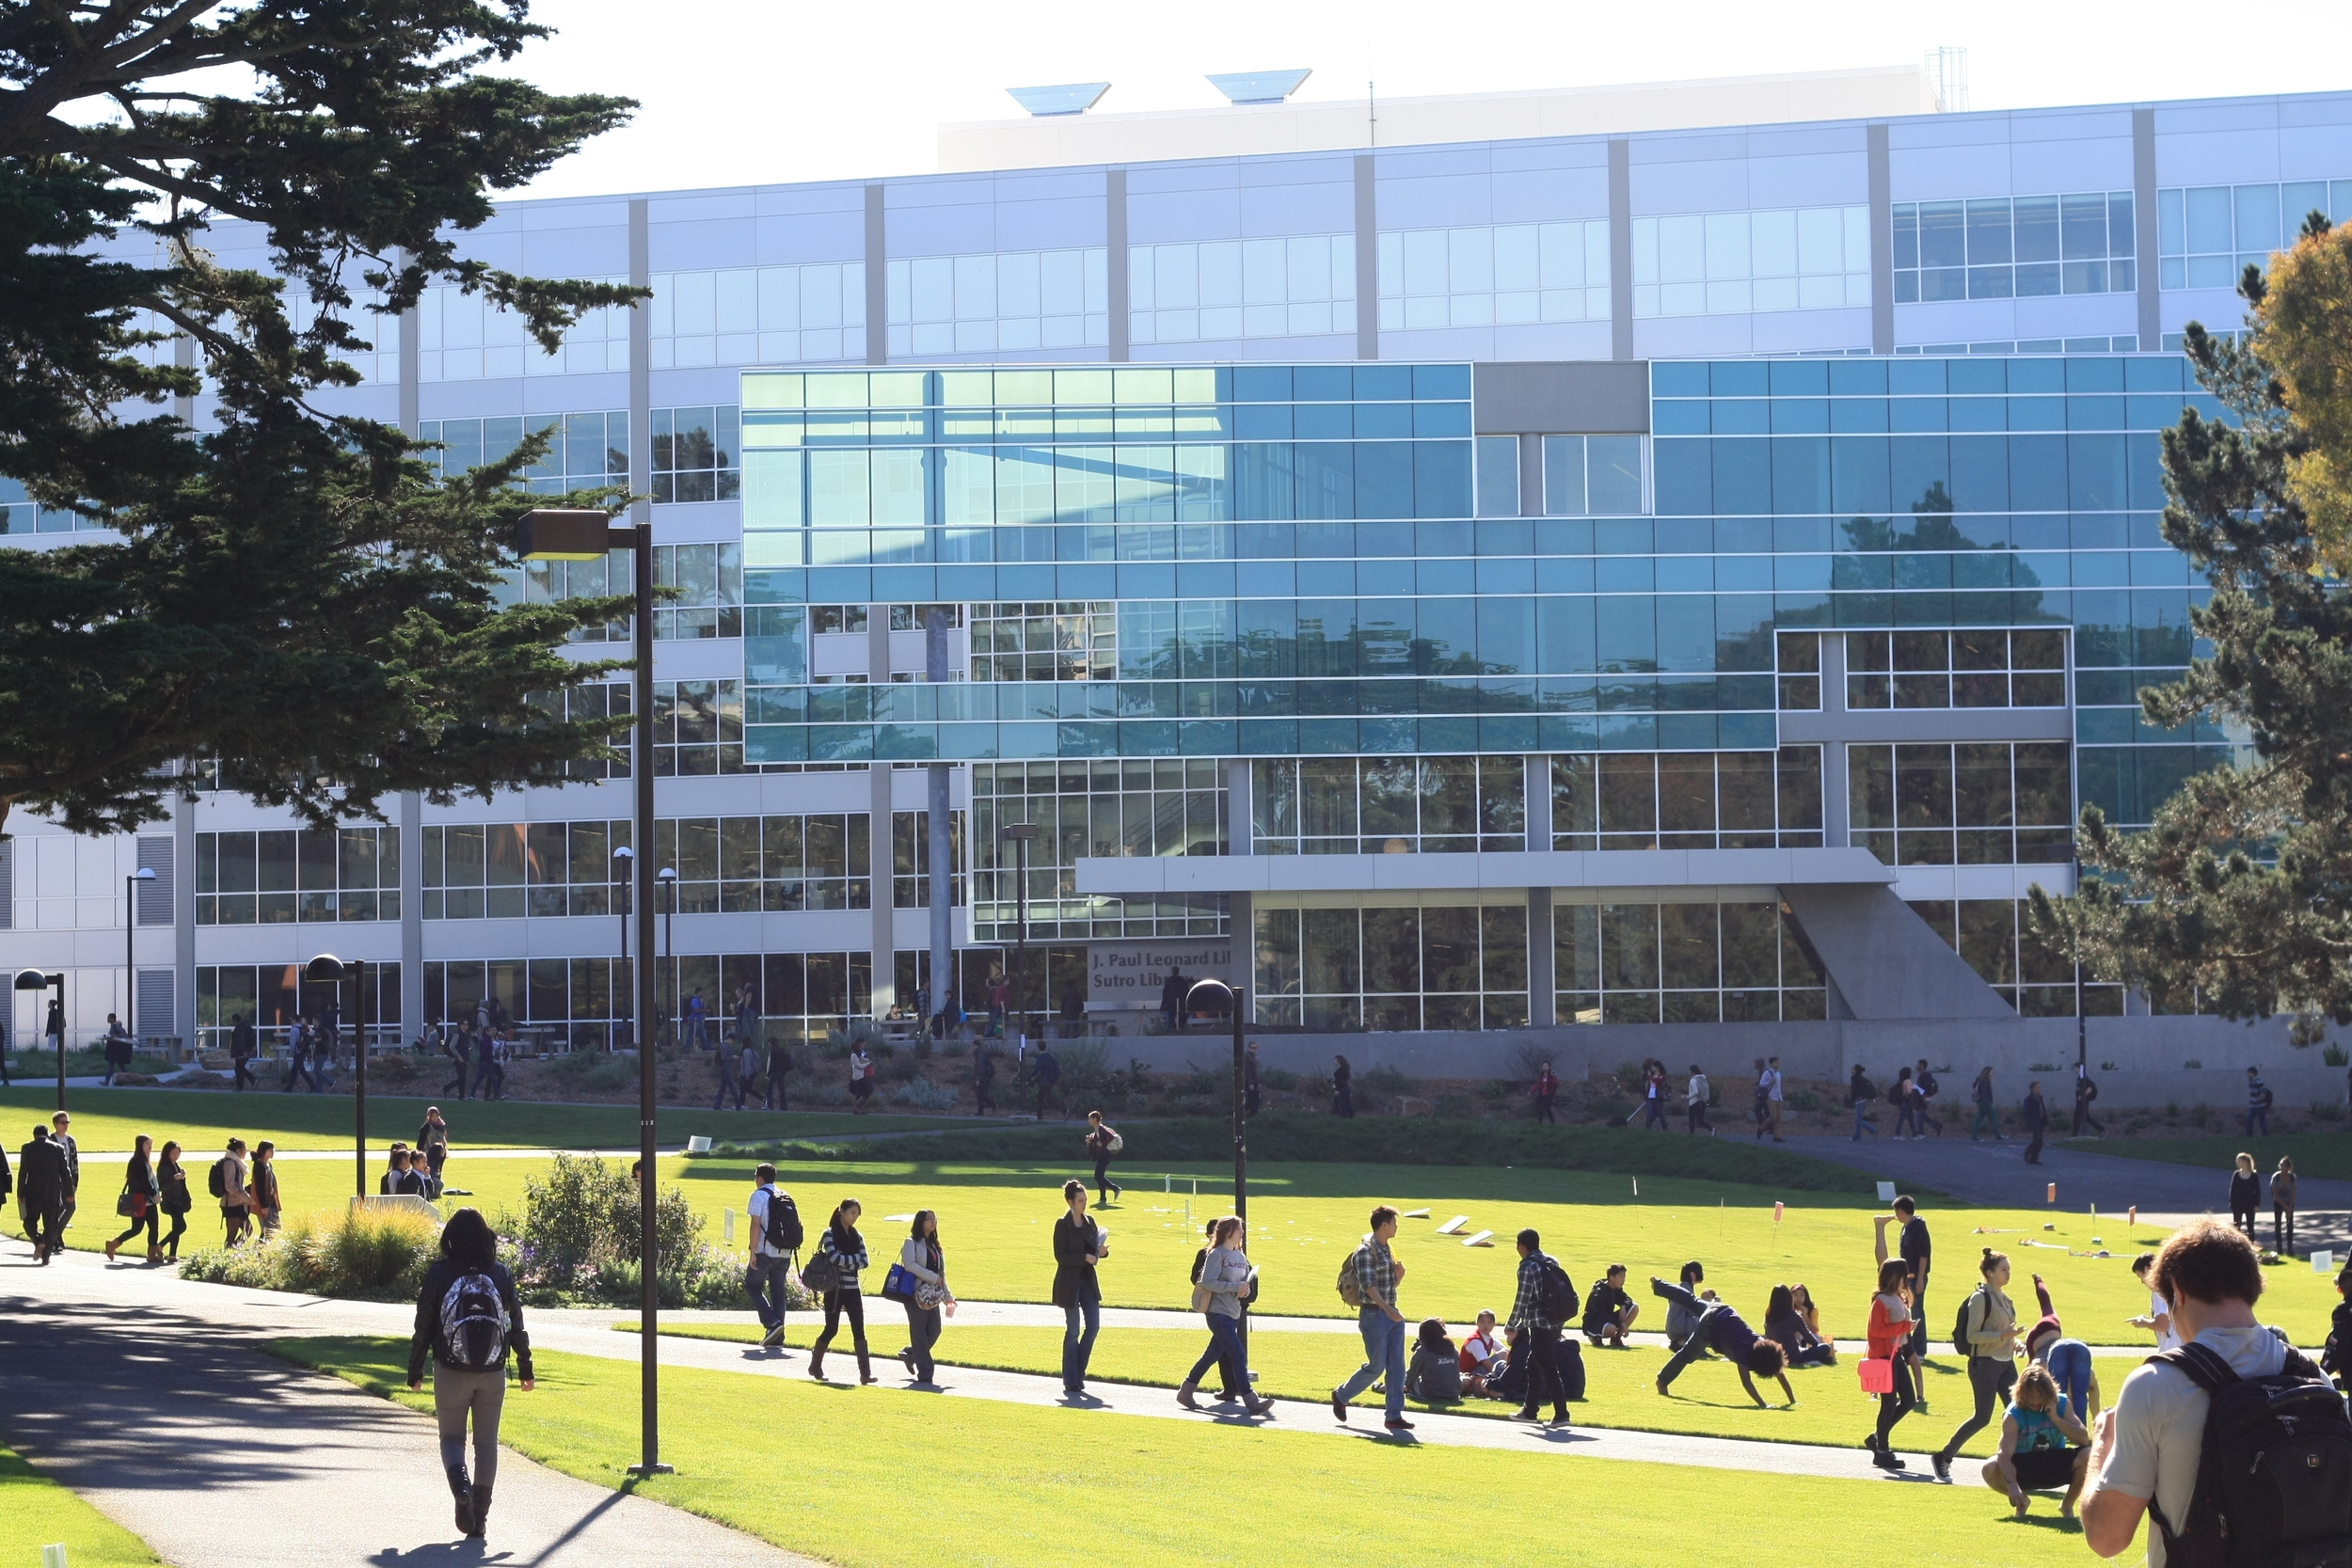 During the academic year, the blocks surrounding San Francisco State University's campus are lively with students walking to and from classes